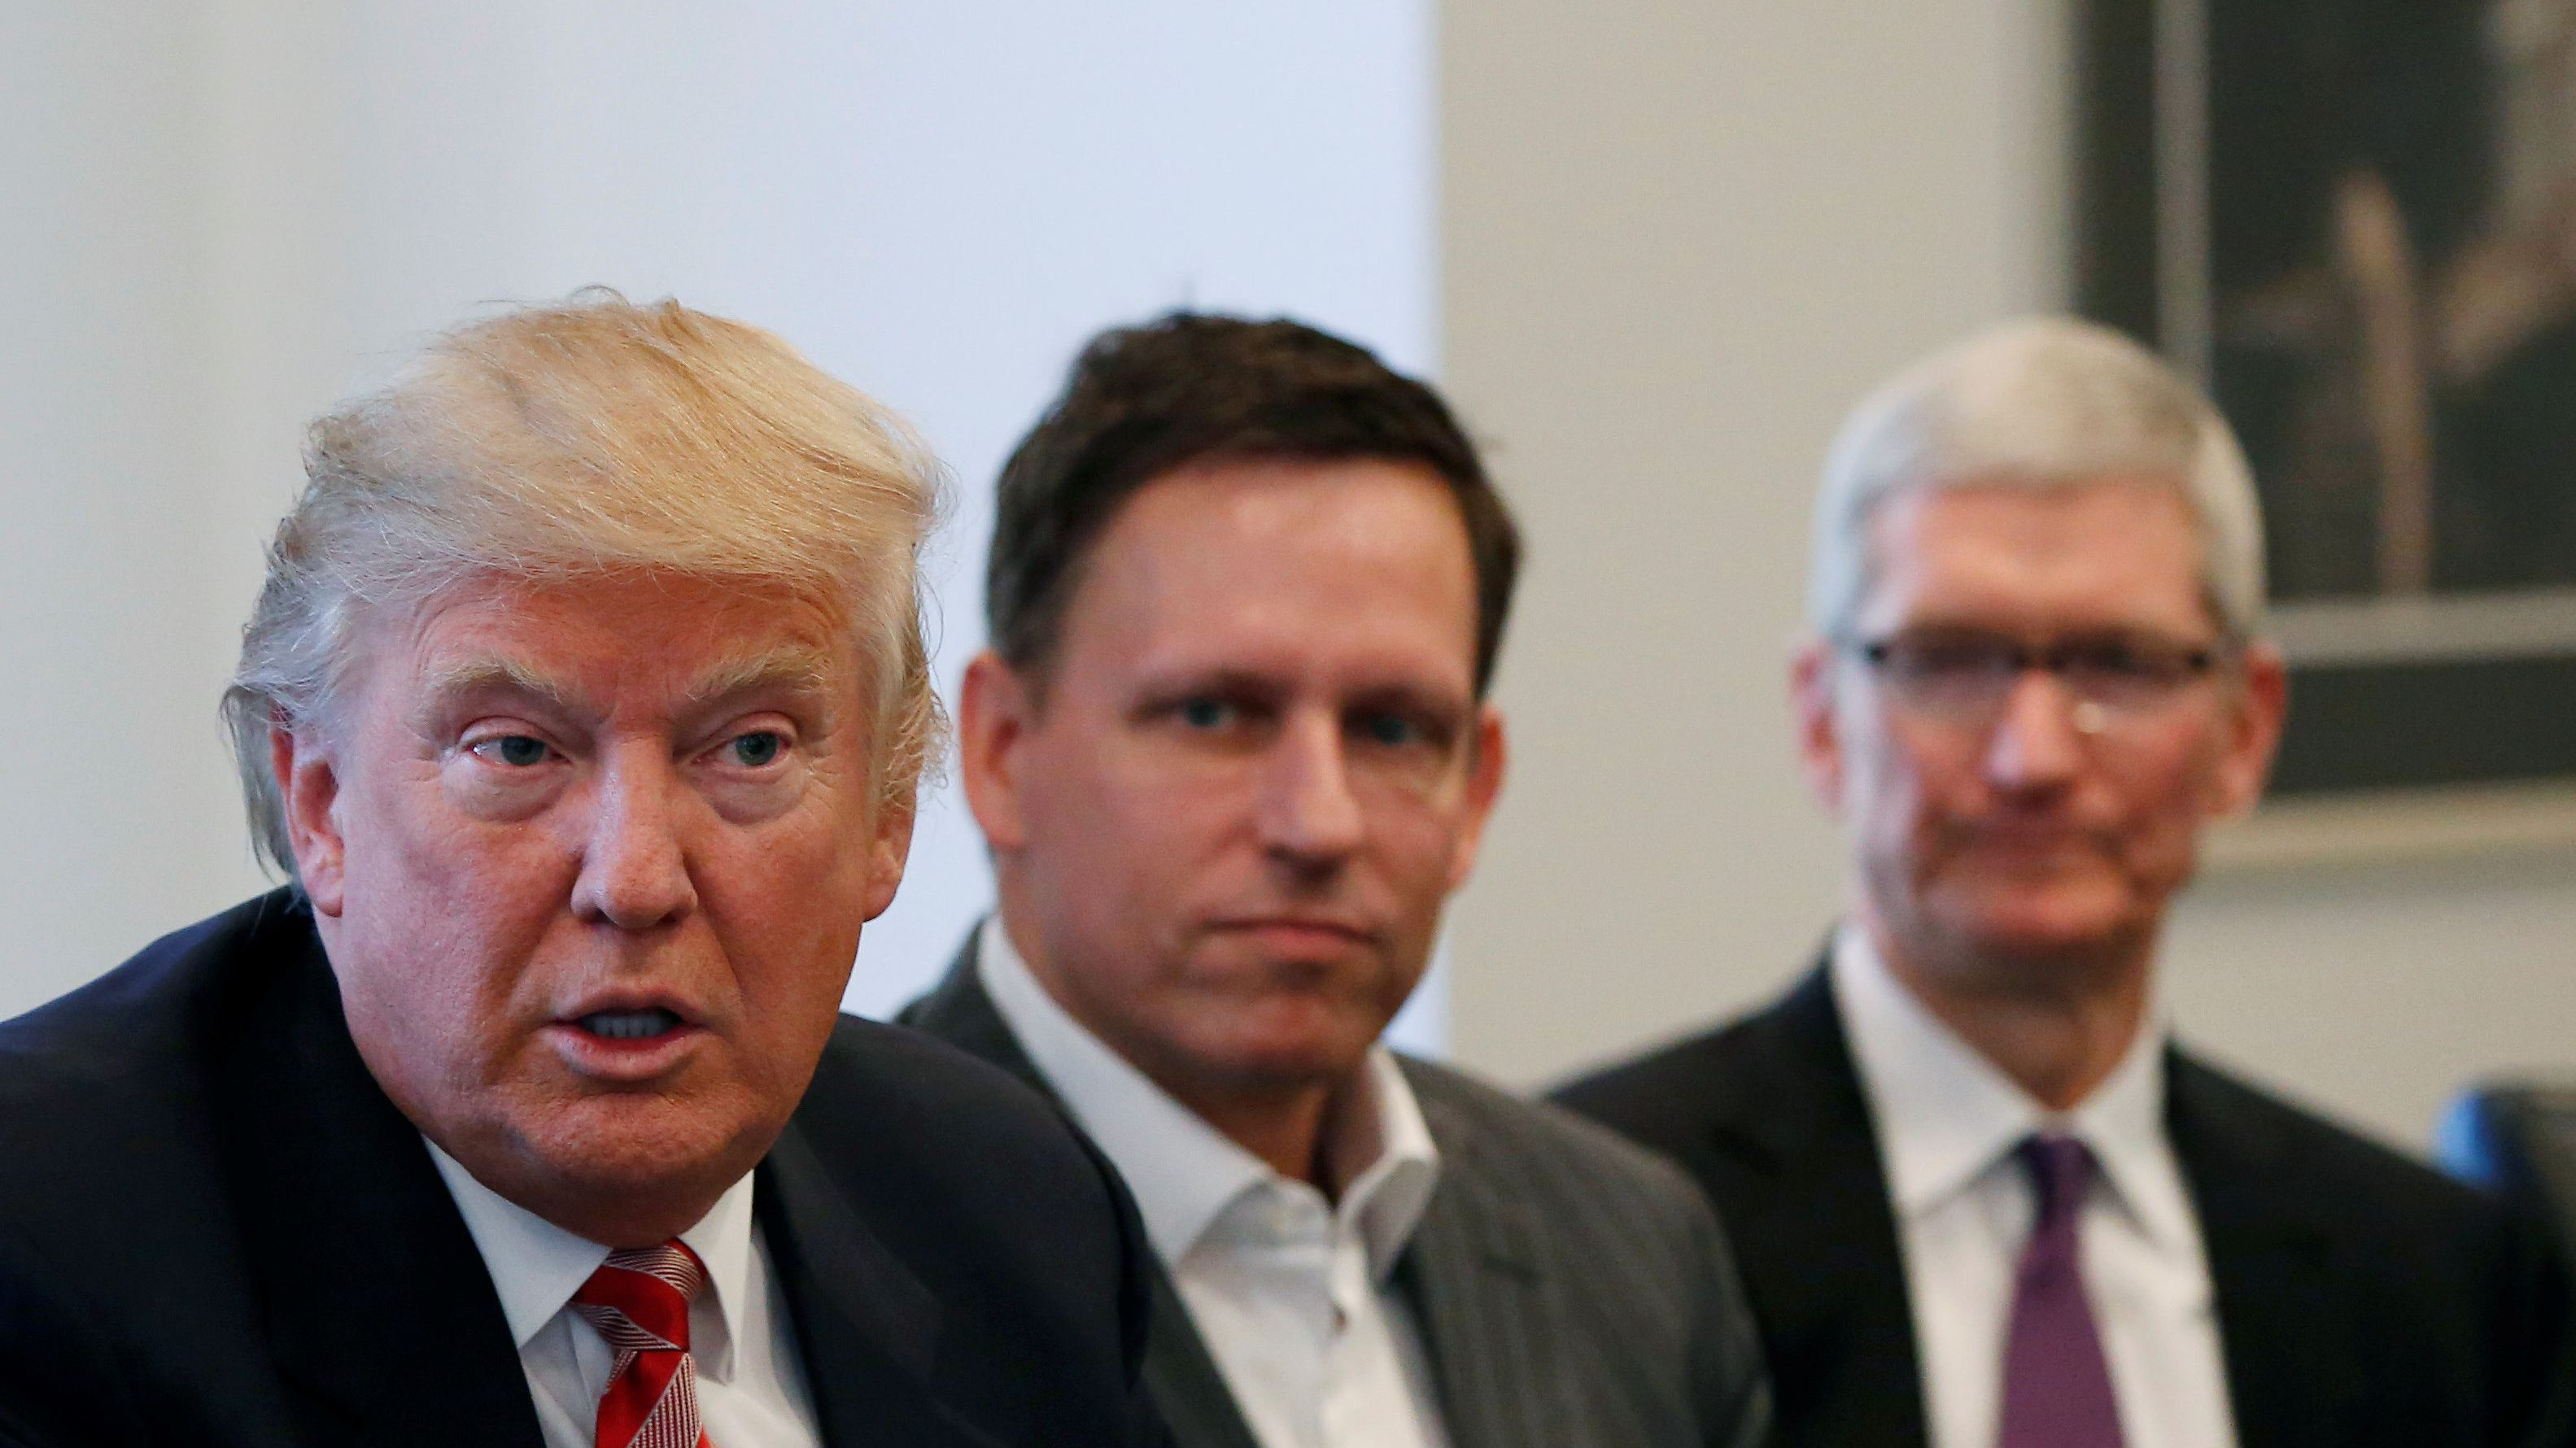 Apple CEO Tim Cook listens as President-elect Donald Trump speaks during a meeting with technology industry leaders at Trump Tower in New York, Wednesday, Dec. 14, 2016.